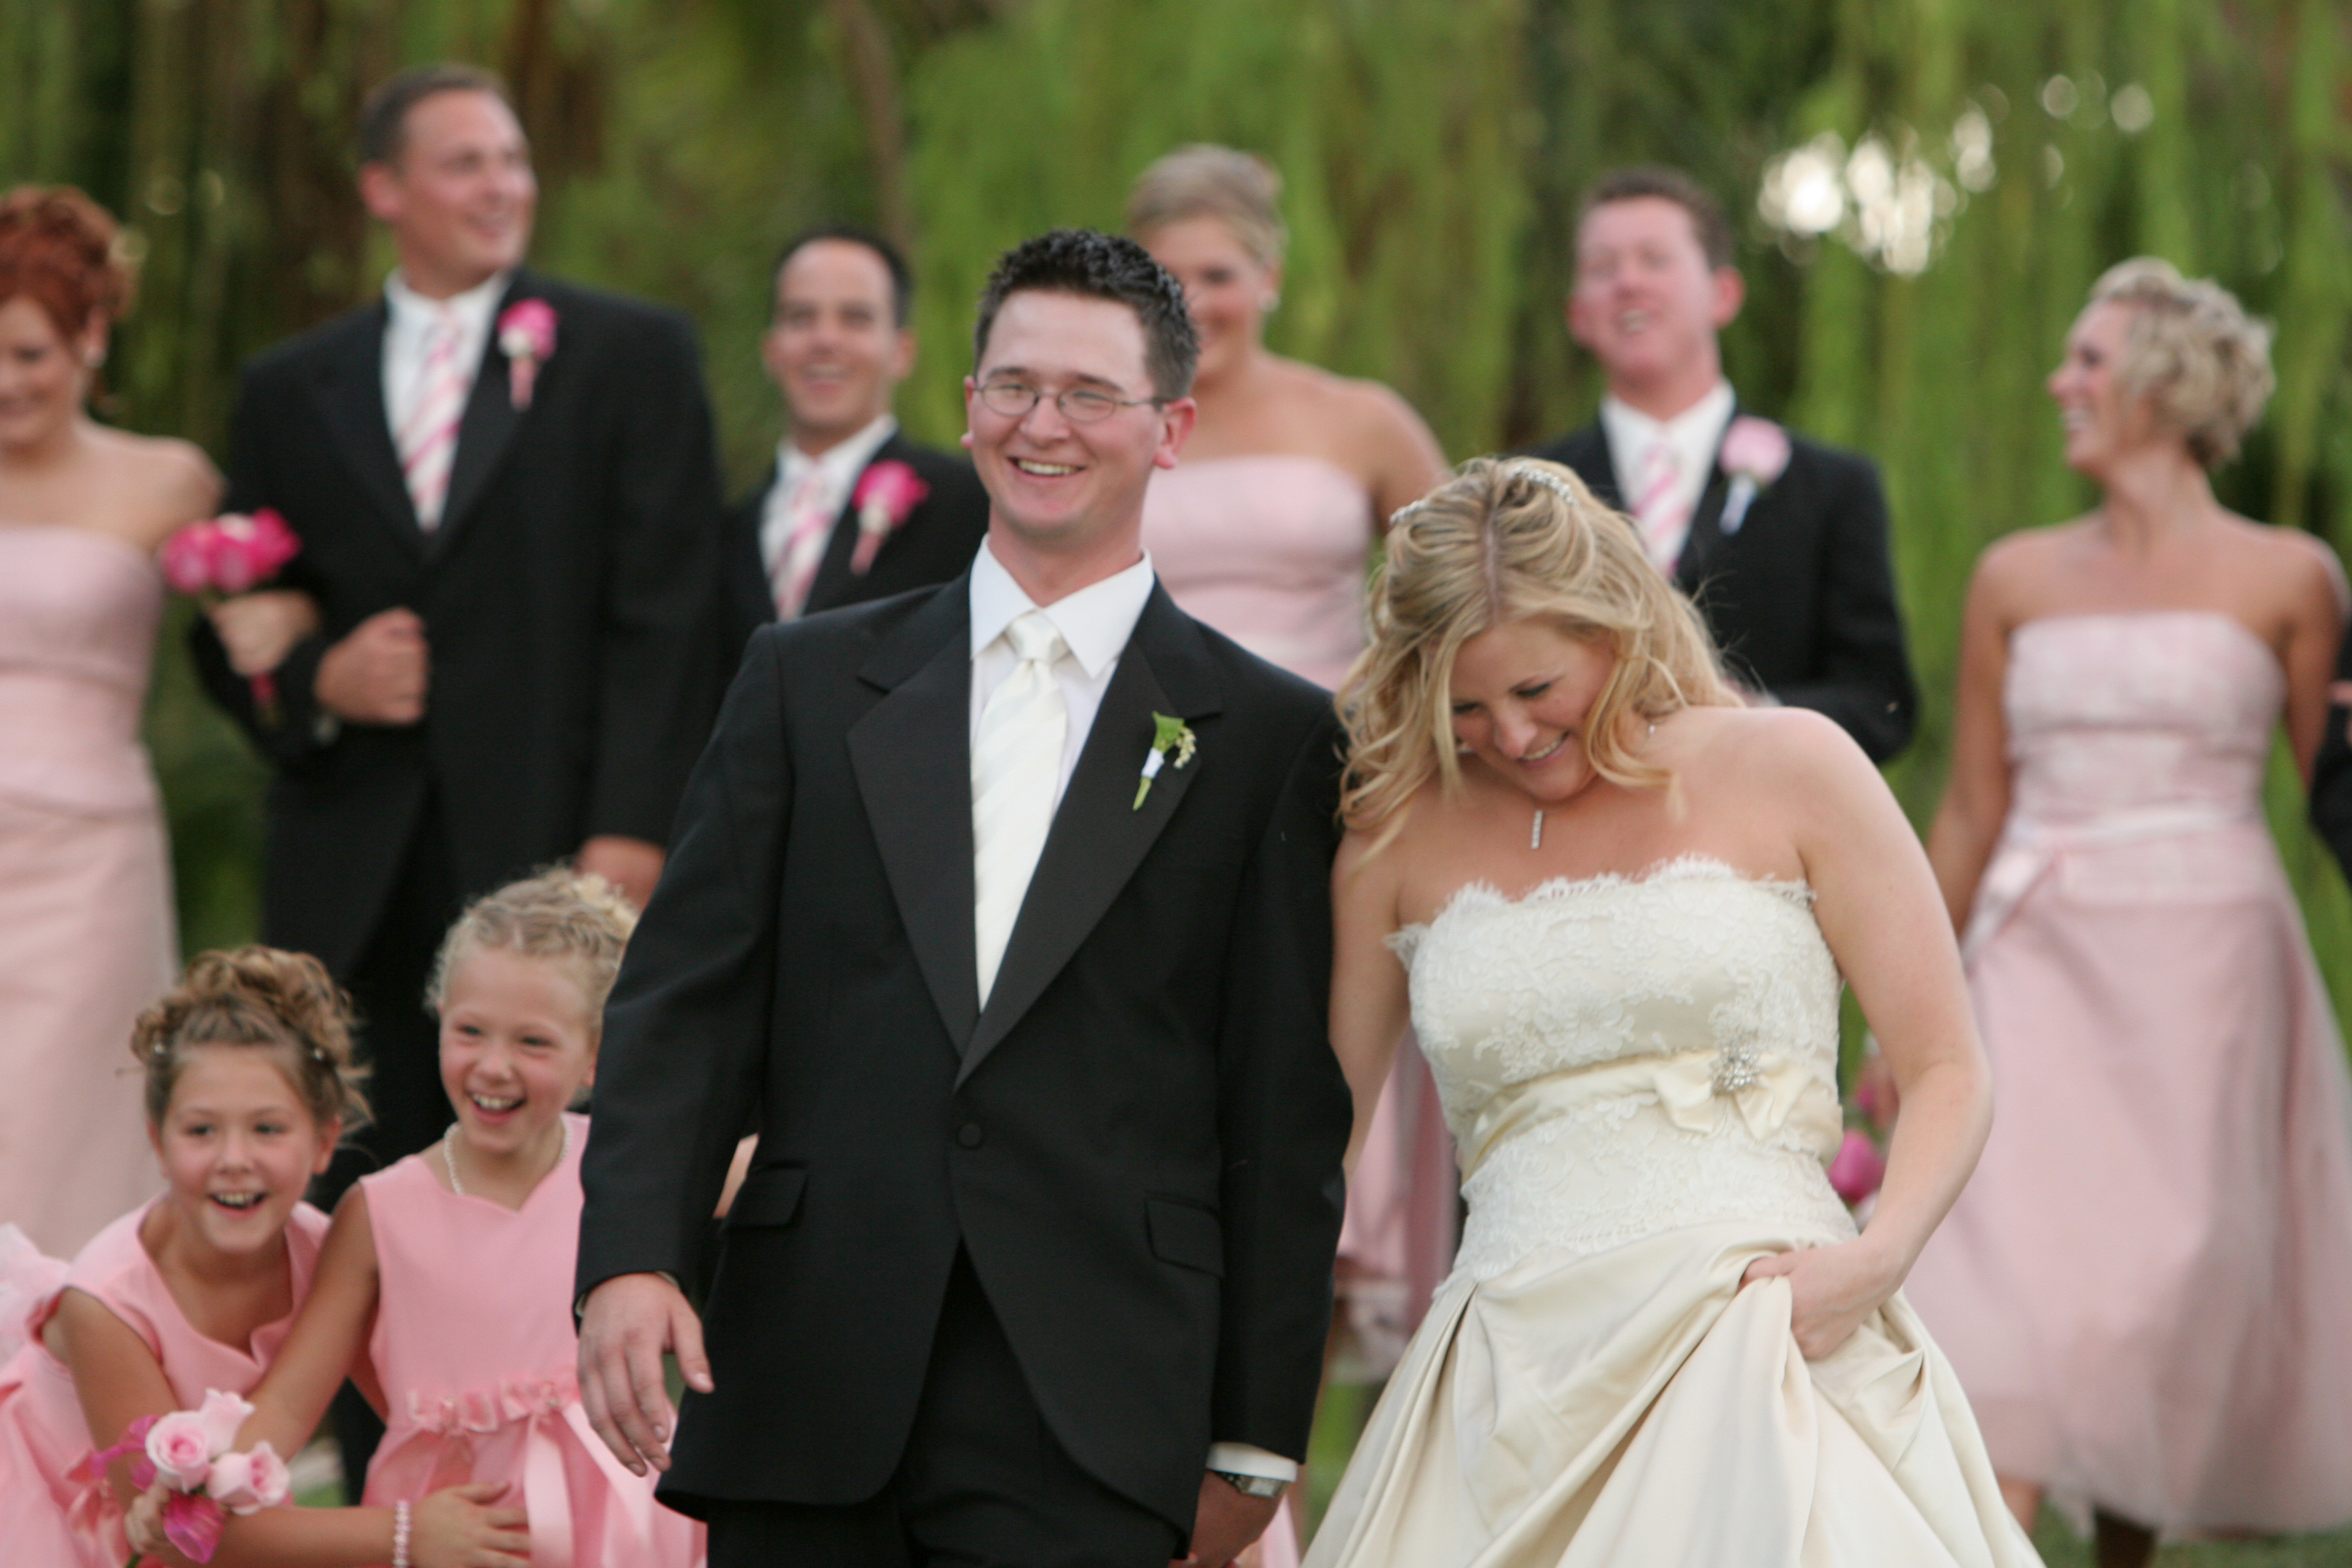 Jamie and her husband couldn't have been more excited for their wedding day!